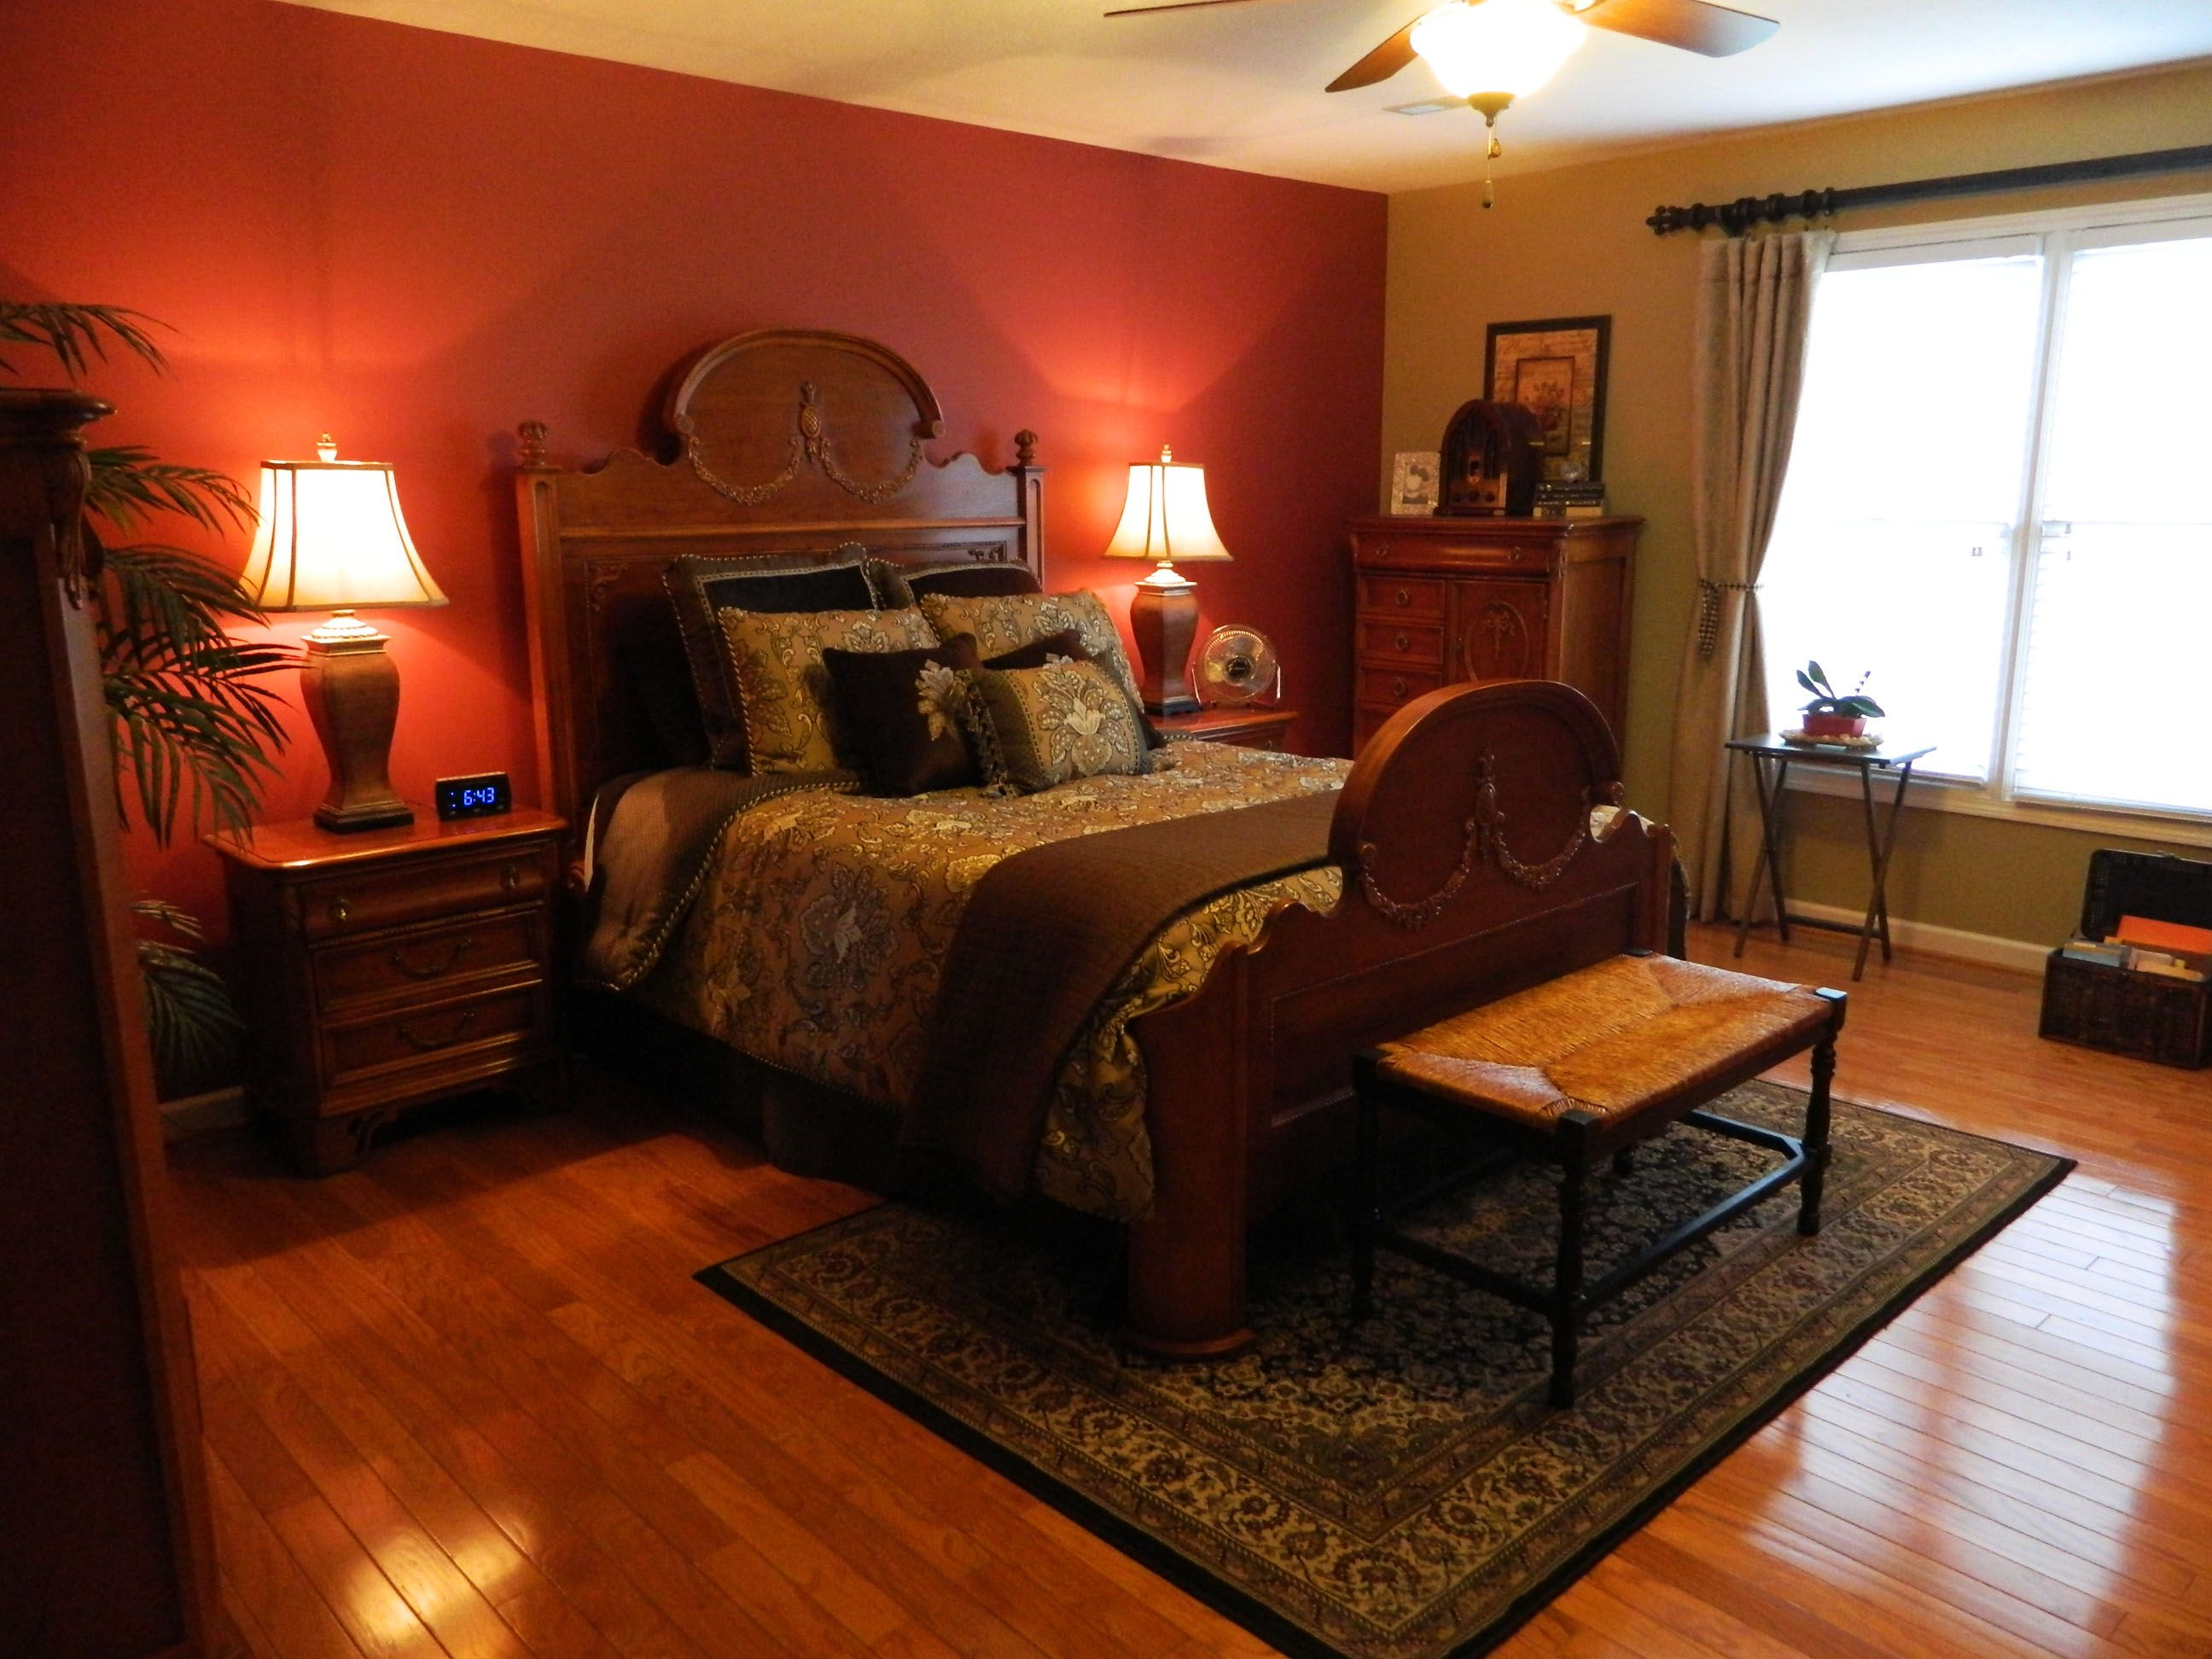 Master bedroom wall painted brick red. French country